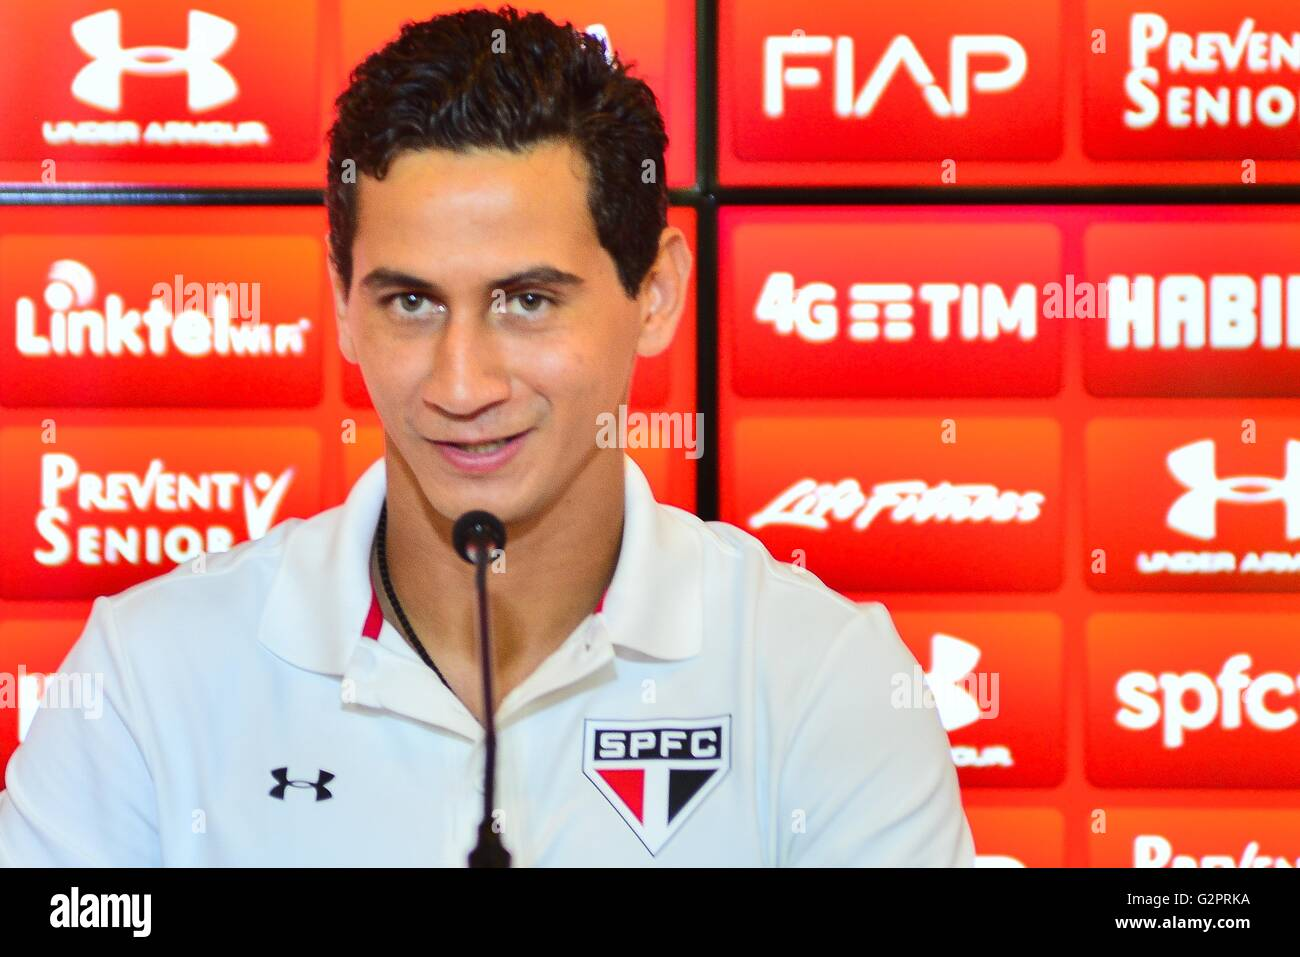 SAO PAULO, Brazil - 02/06/2016: COLLECTIVE GOOSE PH - PH Ganso during a press conference about his call for the - Stock Image